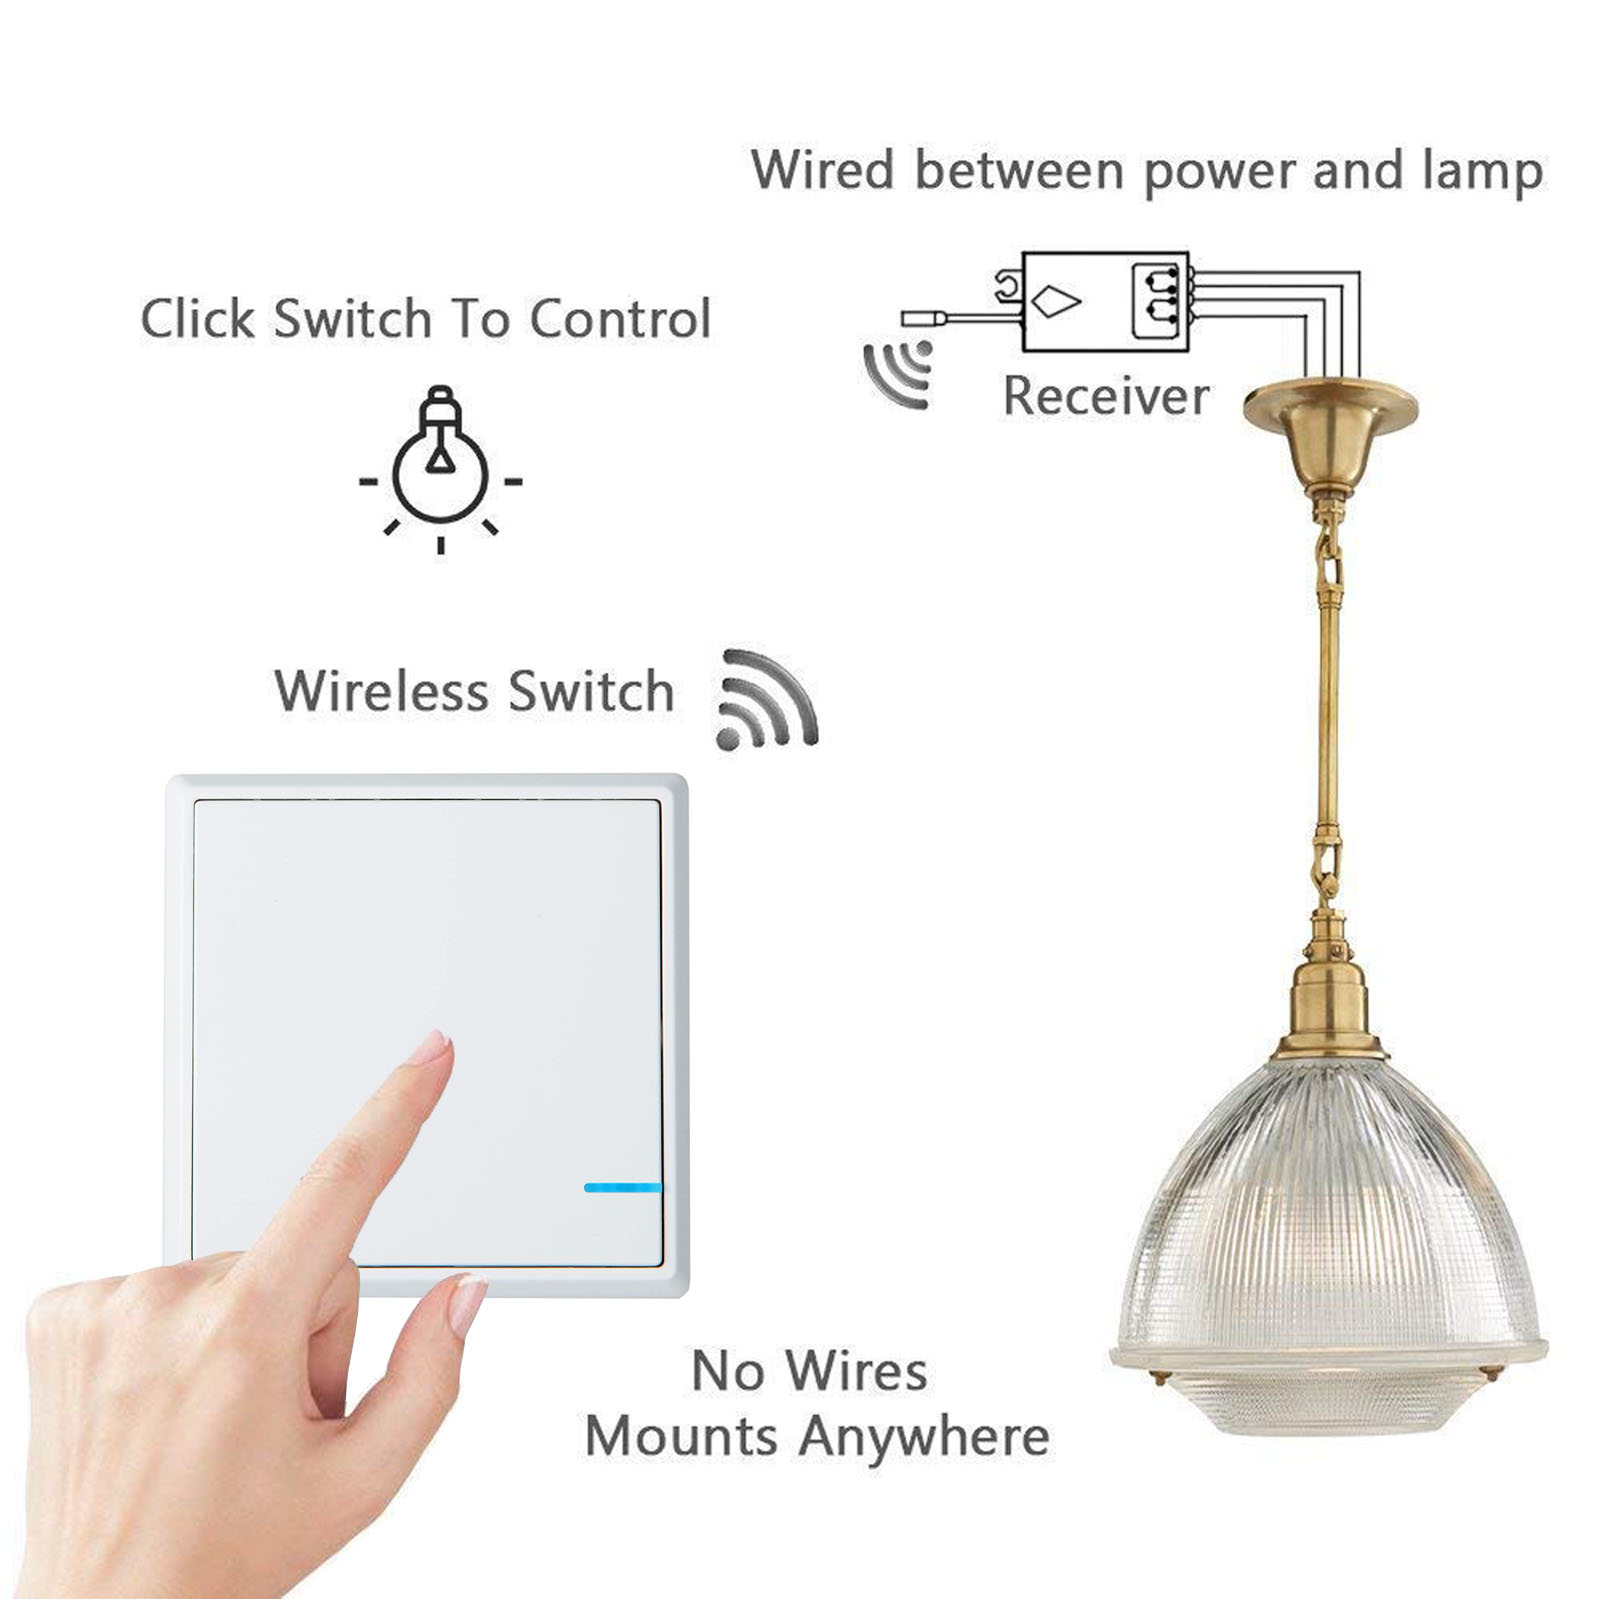 Wireless Smart Lamp Light Wall Switch Home 1 Way On Off Remote Wiring To Ceiling Control Kit